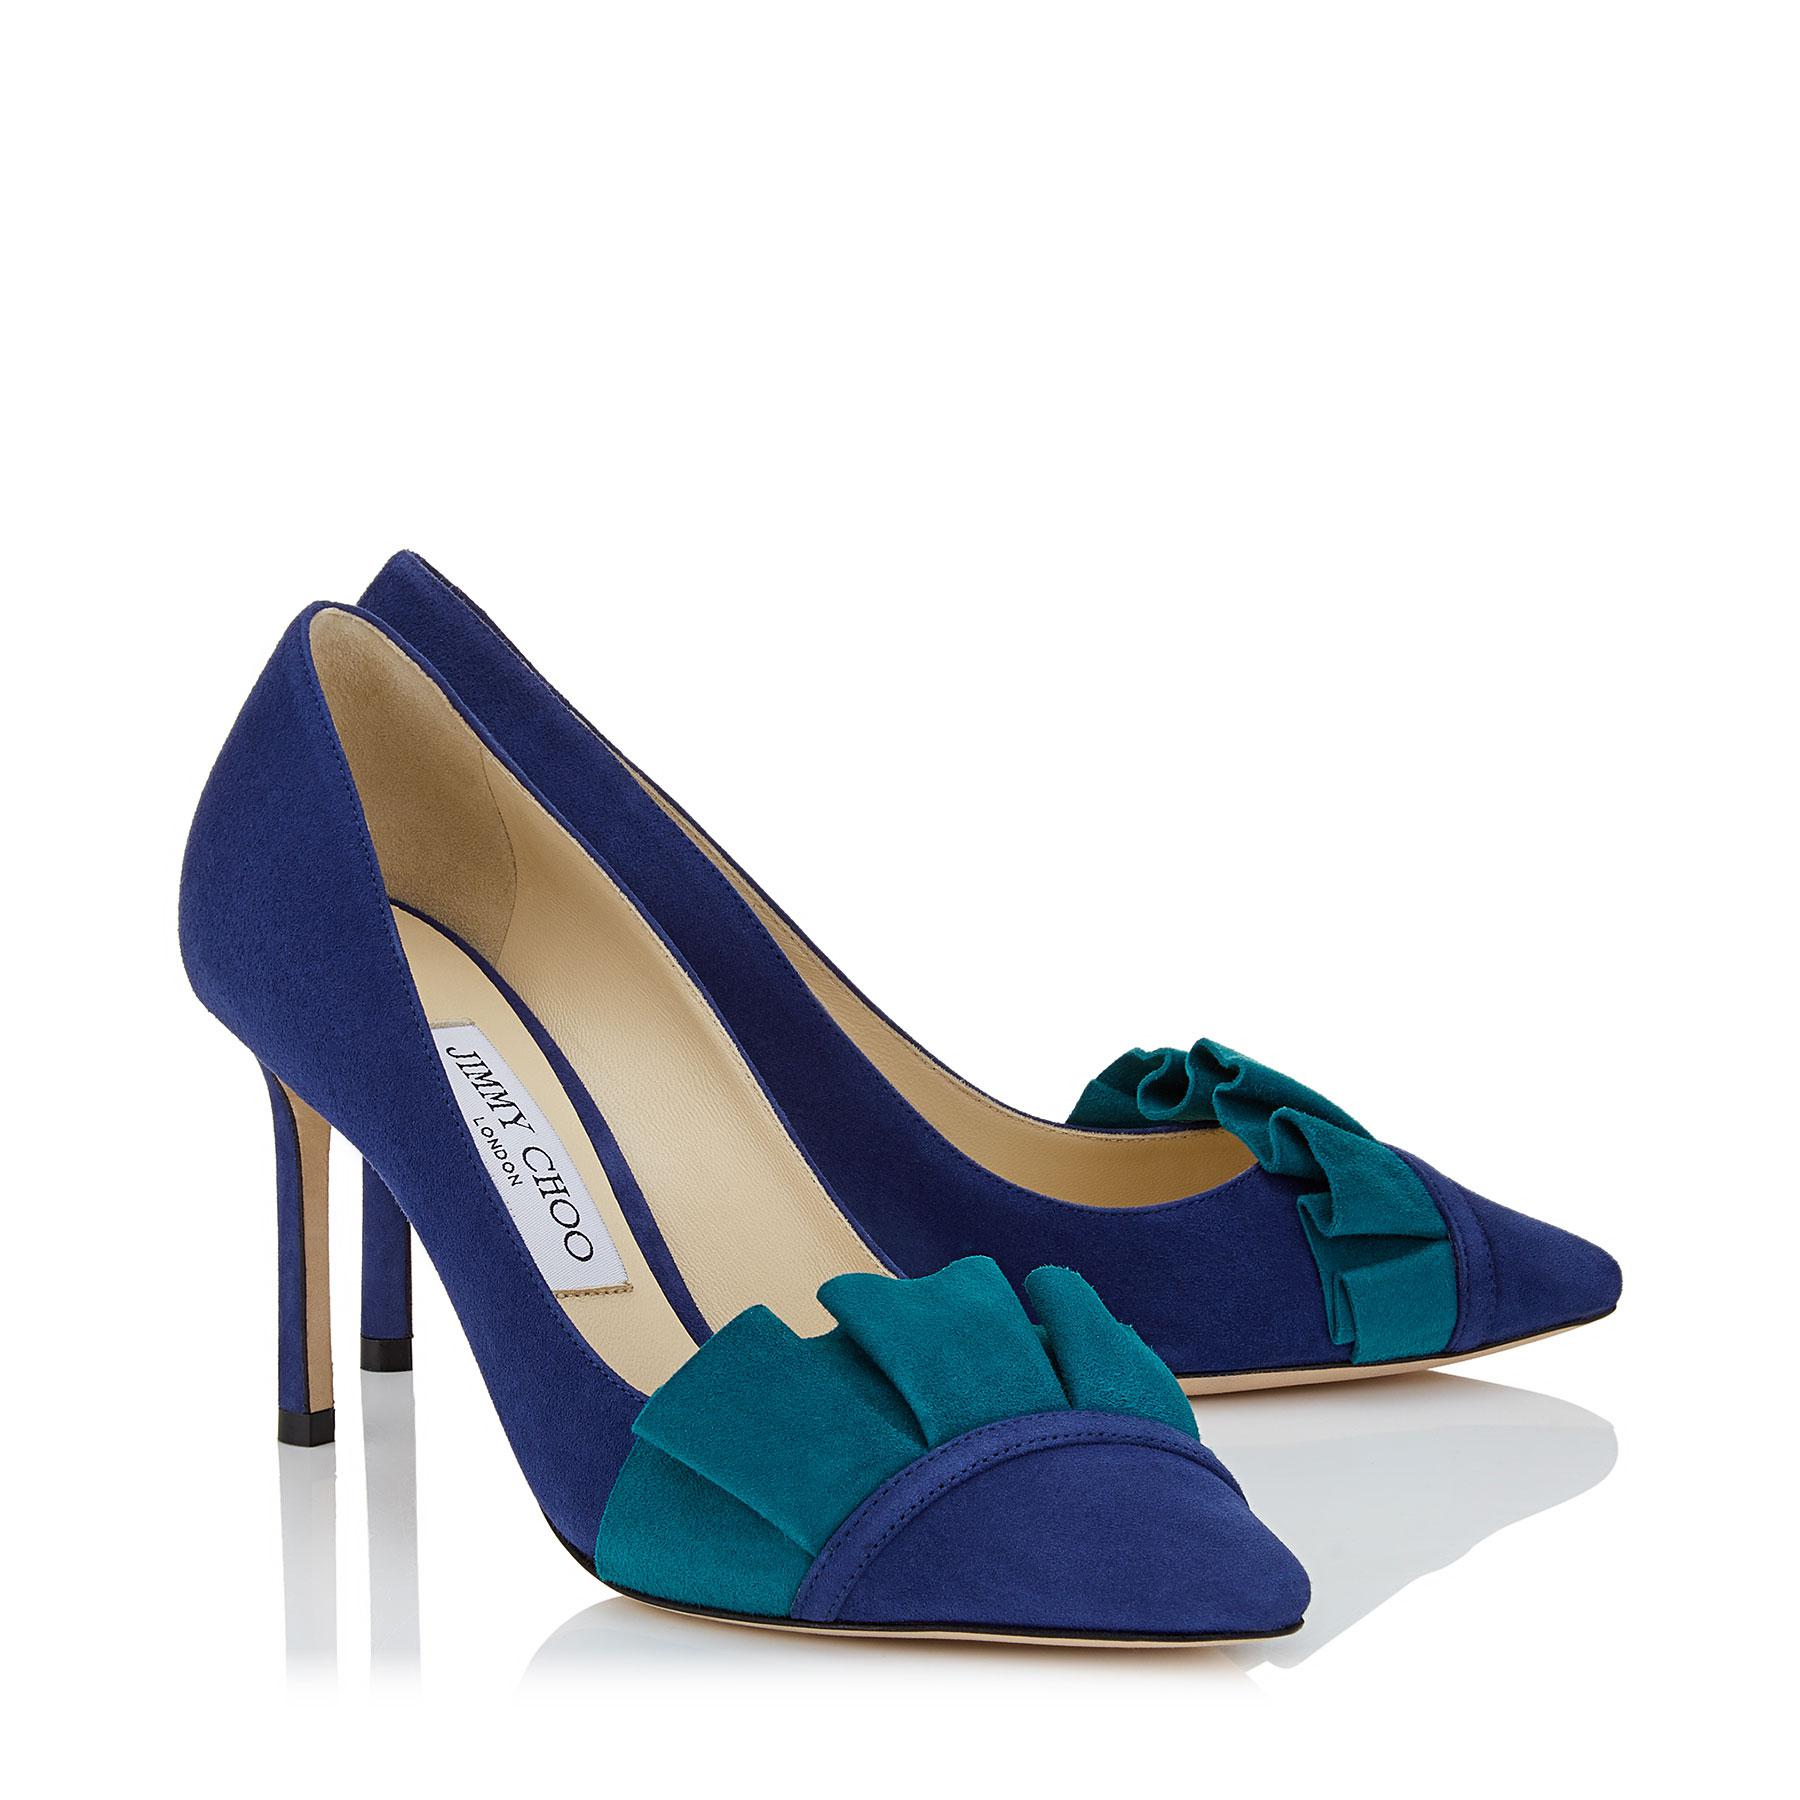 99f18a8cca5 ... Pop Blue Suede Pump With Teal Suede Frill - Lyst. View fullscreen